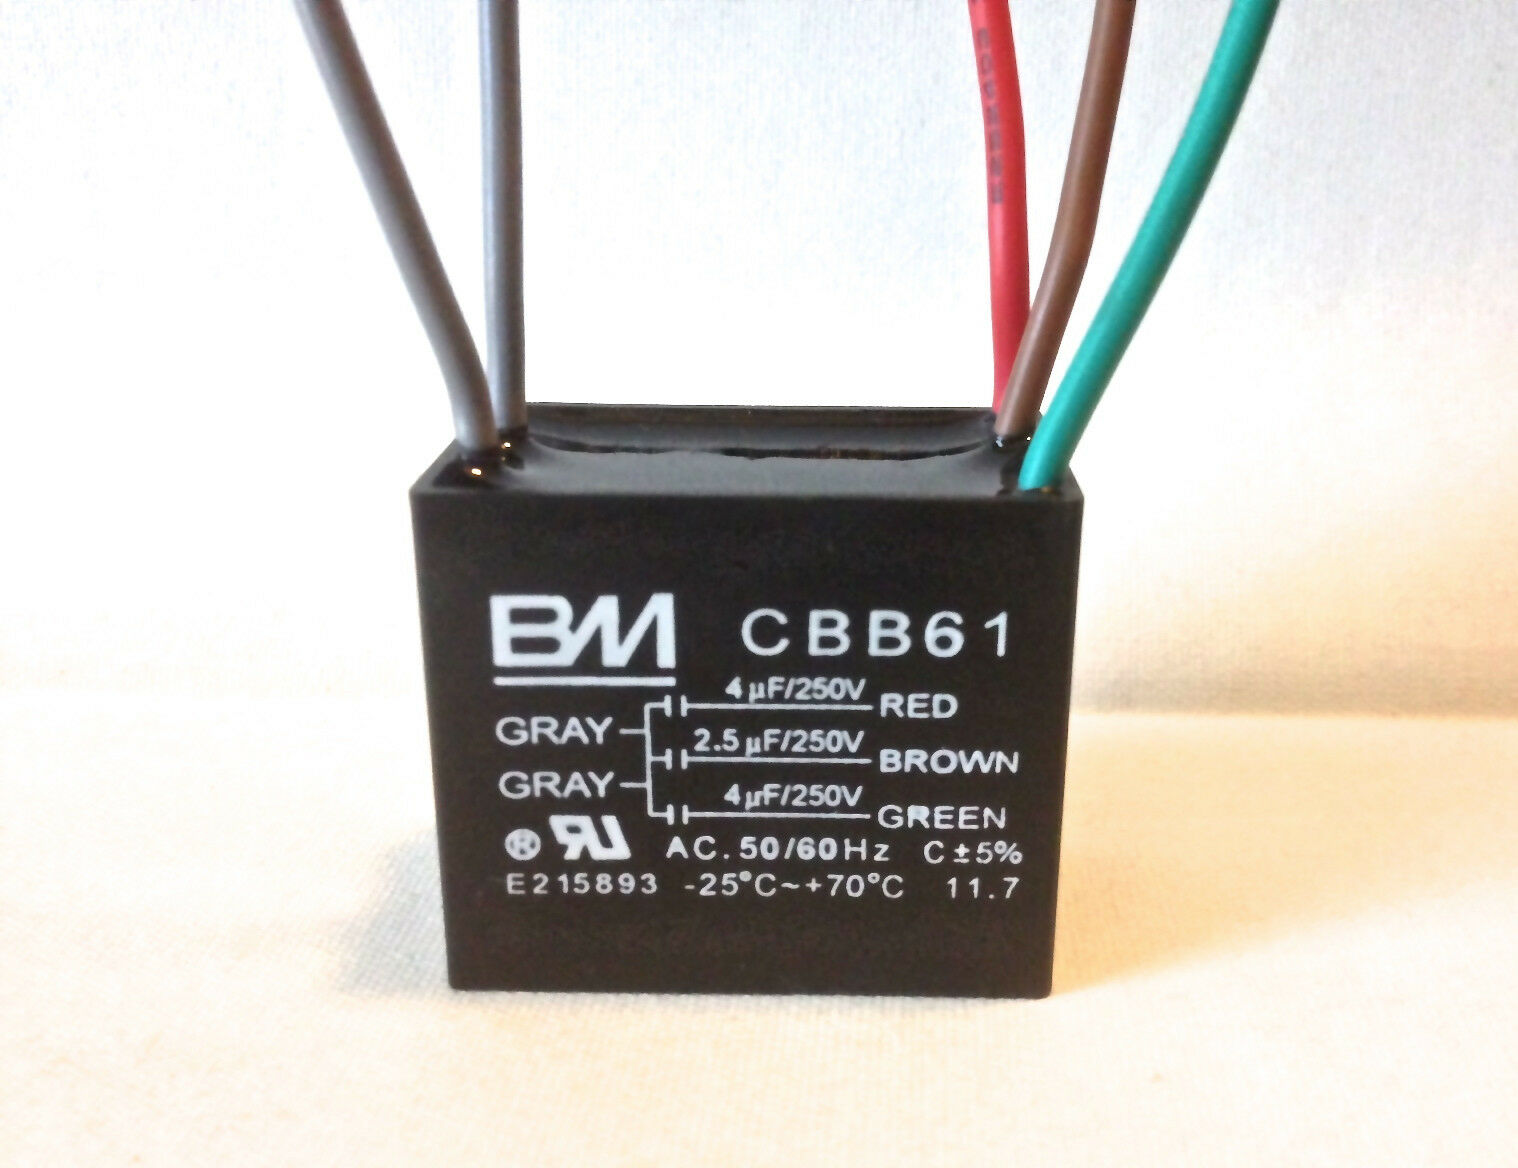 CEILING FAN CAPACITOR CBB61 4uf25uf4uf 5 WIRE UL listed